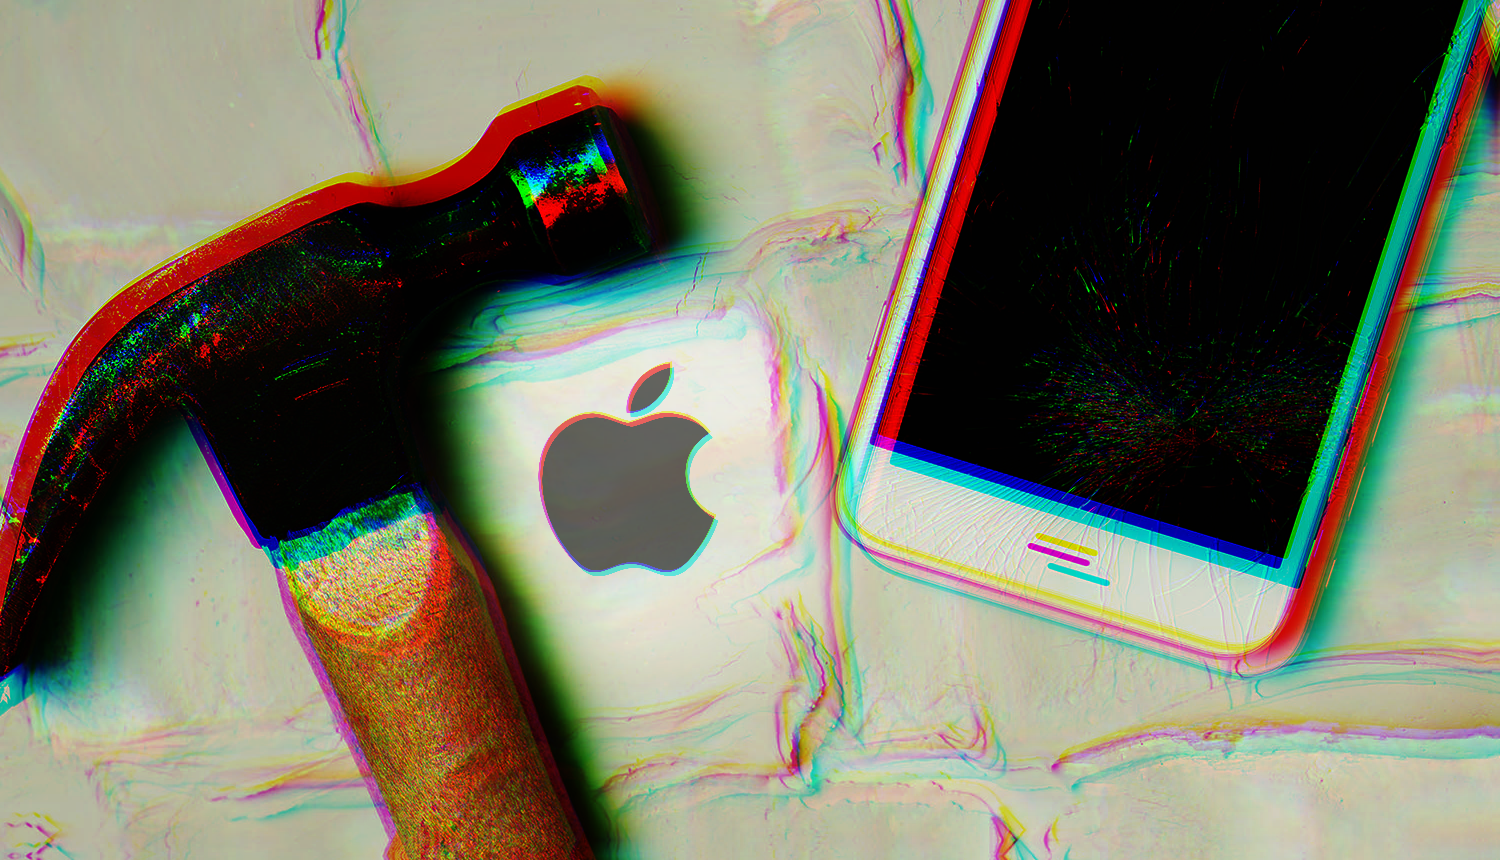 5 iPhone Security & Privacy Settings You Should Check Right Now